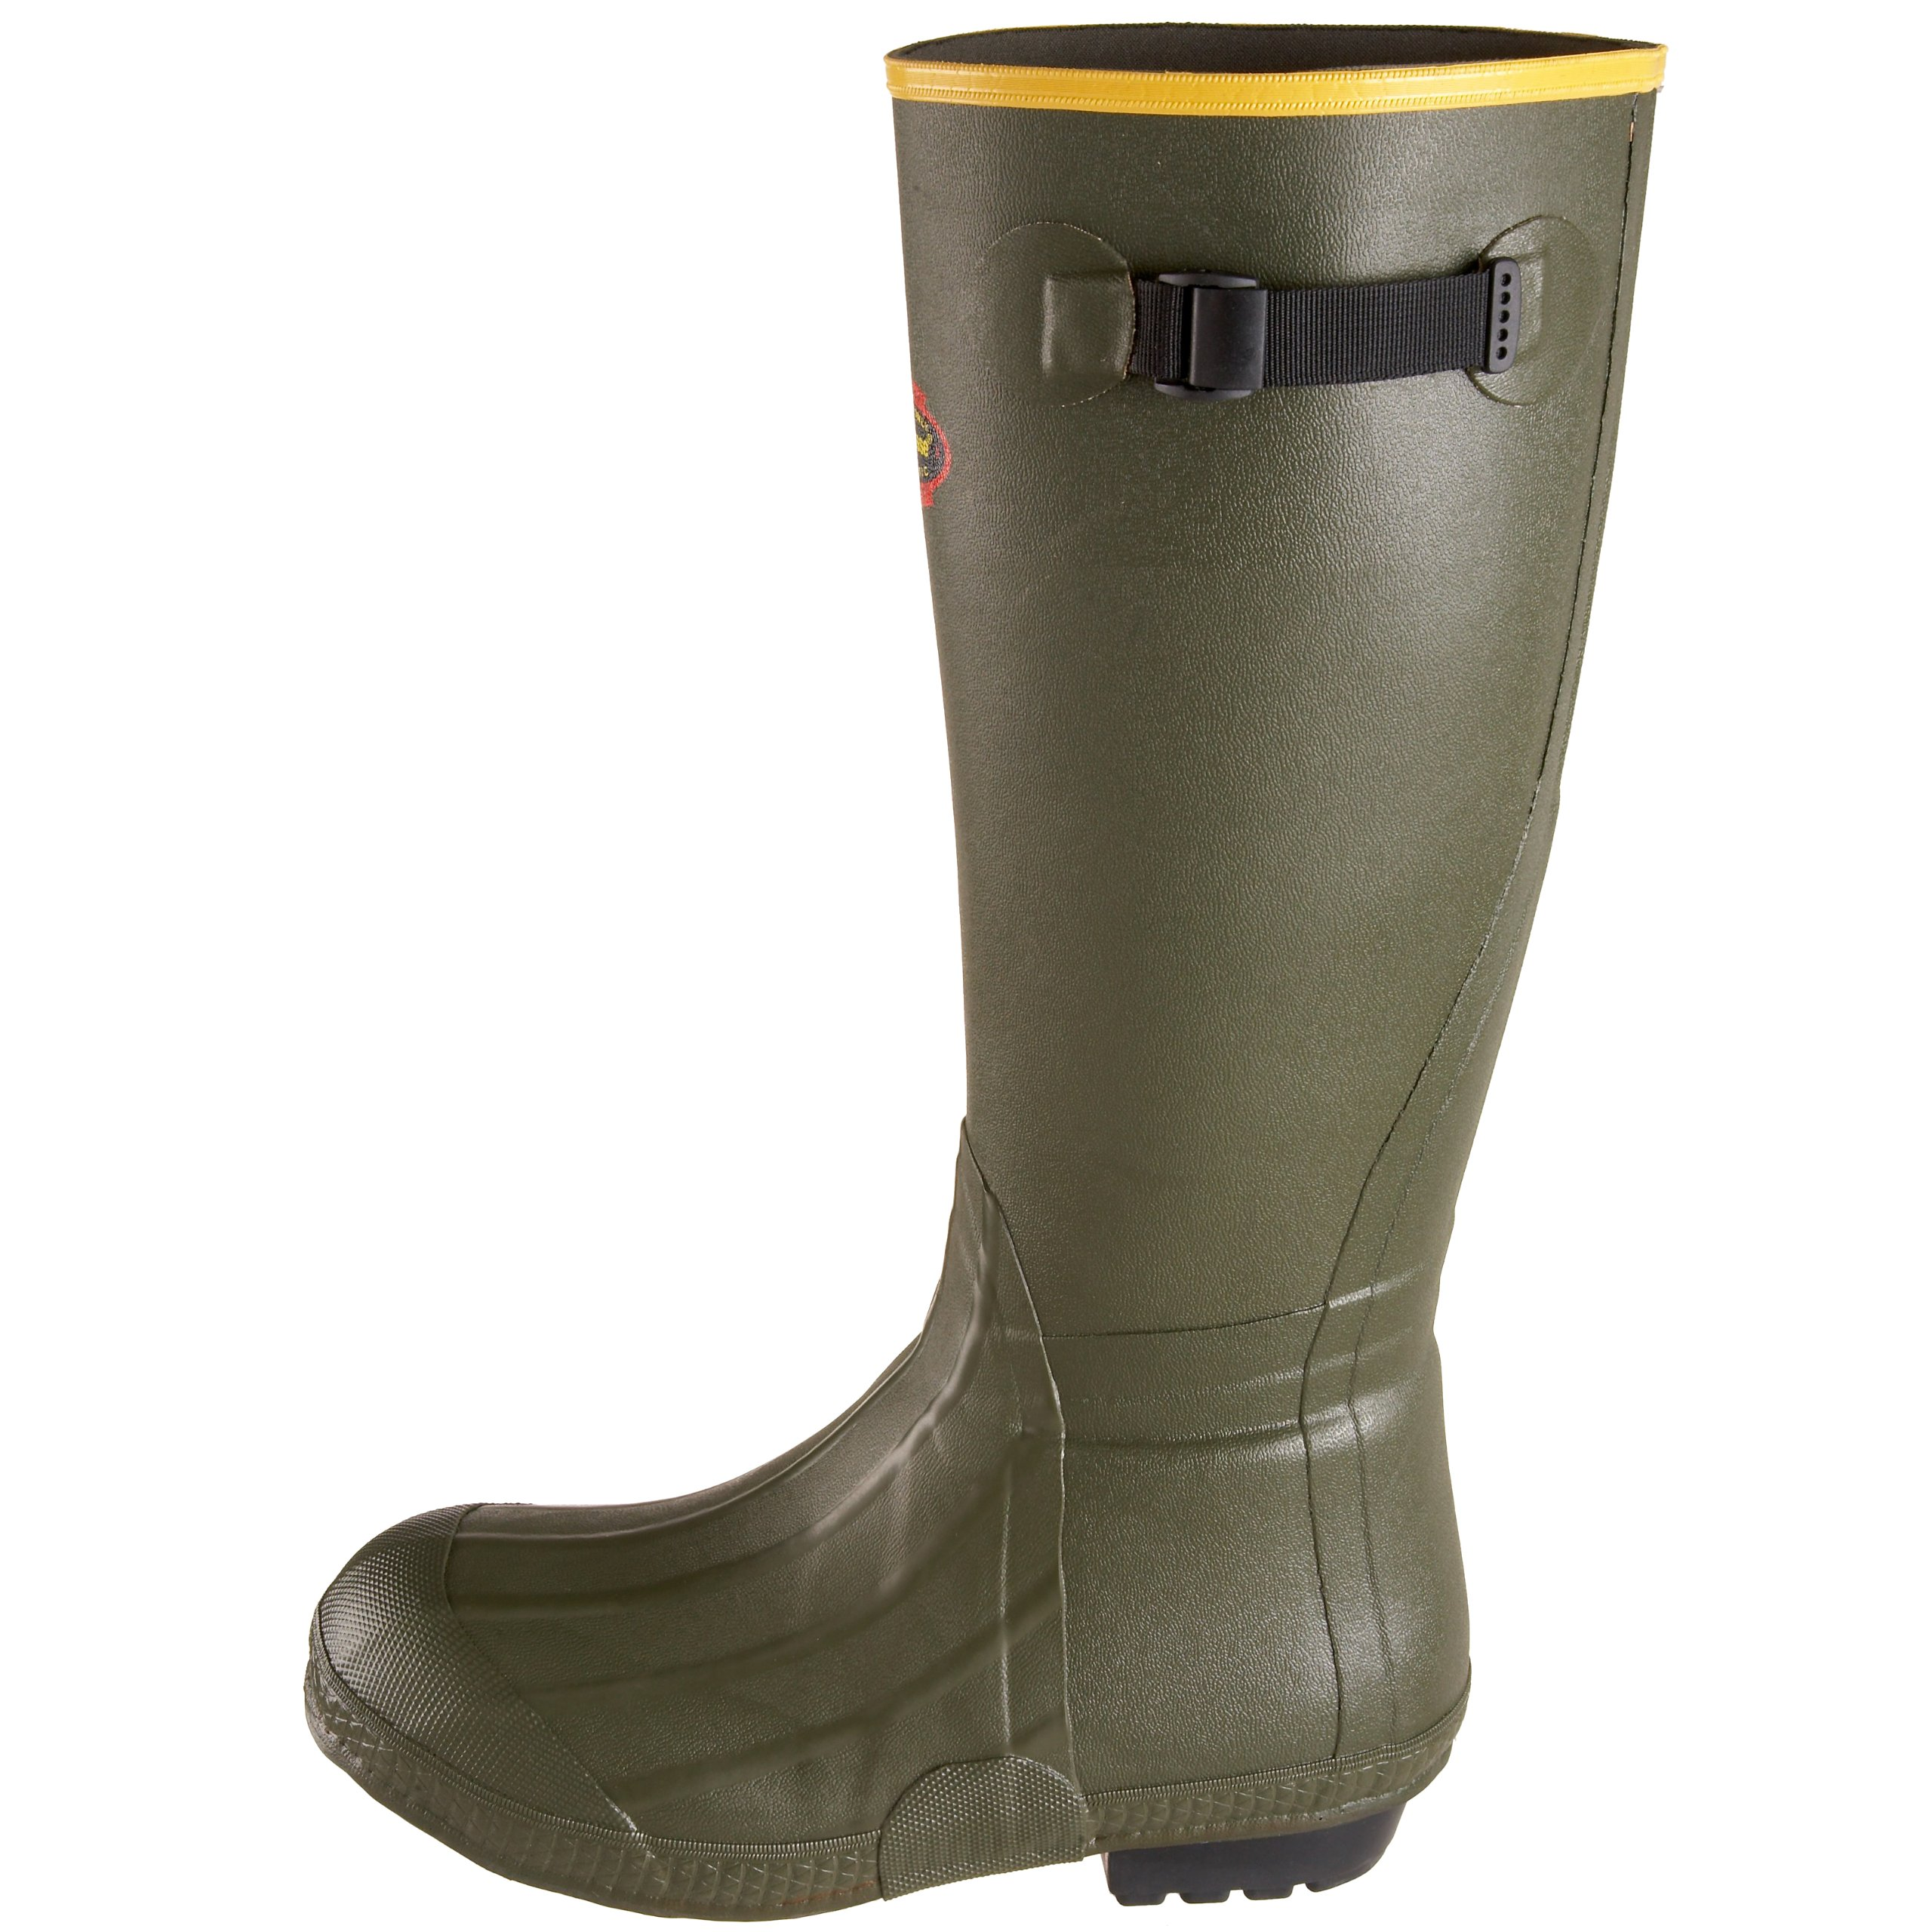 LaCrosse Men's 18'' Burly Air Grip Hunting Boot,Olive Drab Green,6 M US by Lacrosse (Image #5)